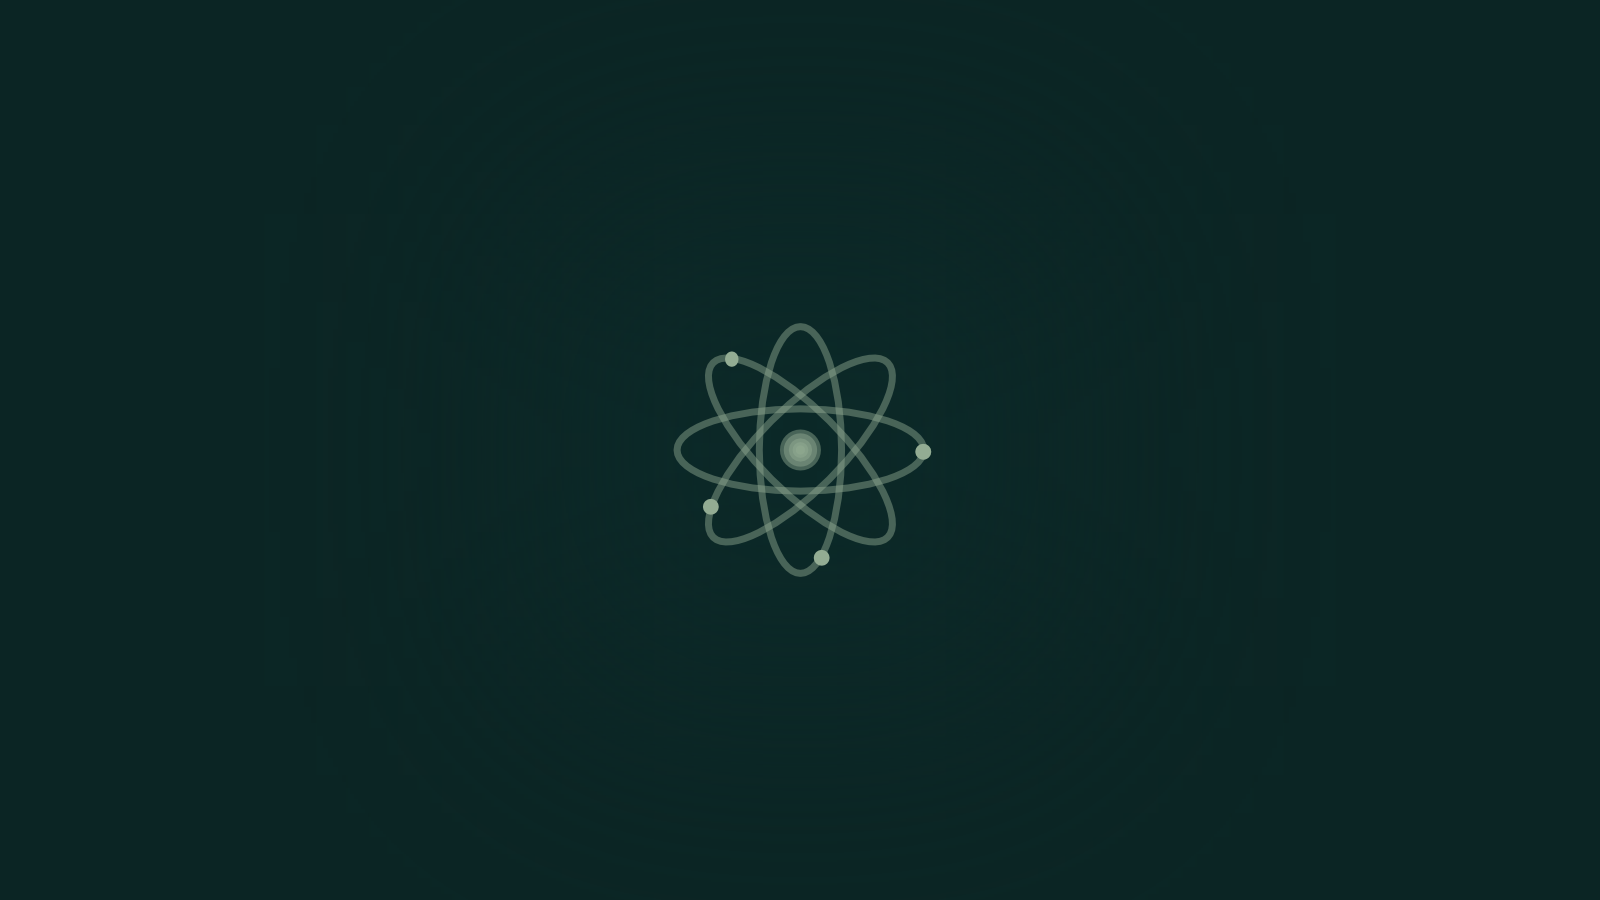 Free Download Atom Wallpaper Images Pictures Becuo 1600x1050 For Your Desktop Mobile Tablet Explore 50 Atom Wallpaper 1950s Atomic Wallpaper Mid Century Wallpaper New Atomic Atomic Age Wallpaper